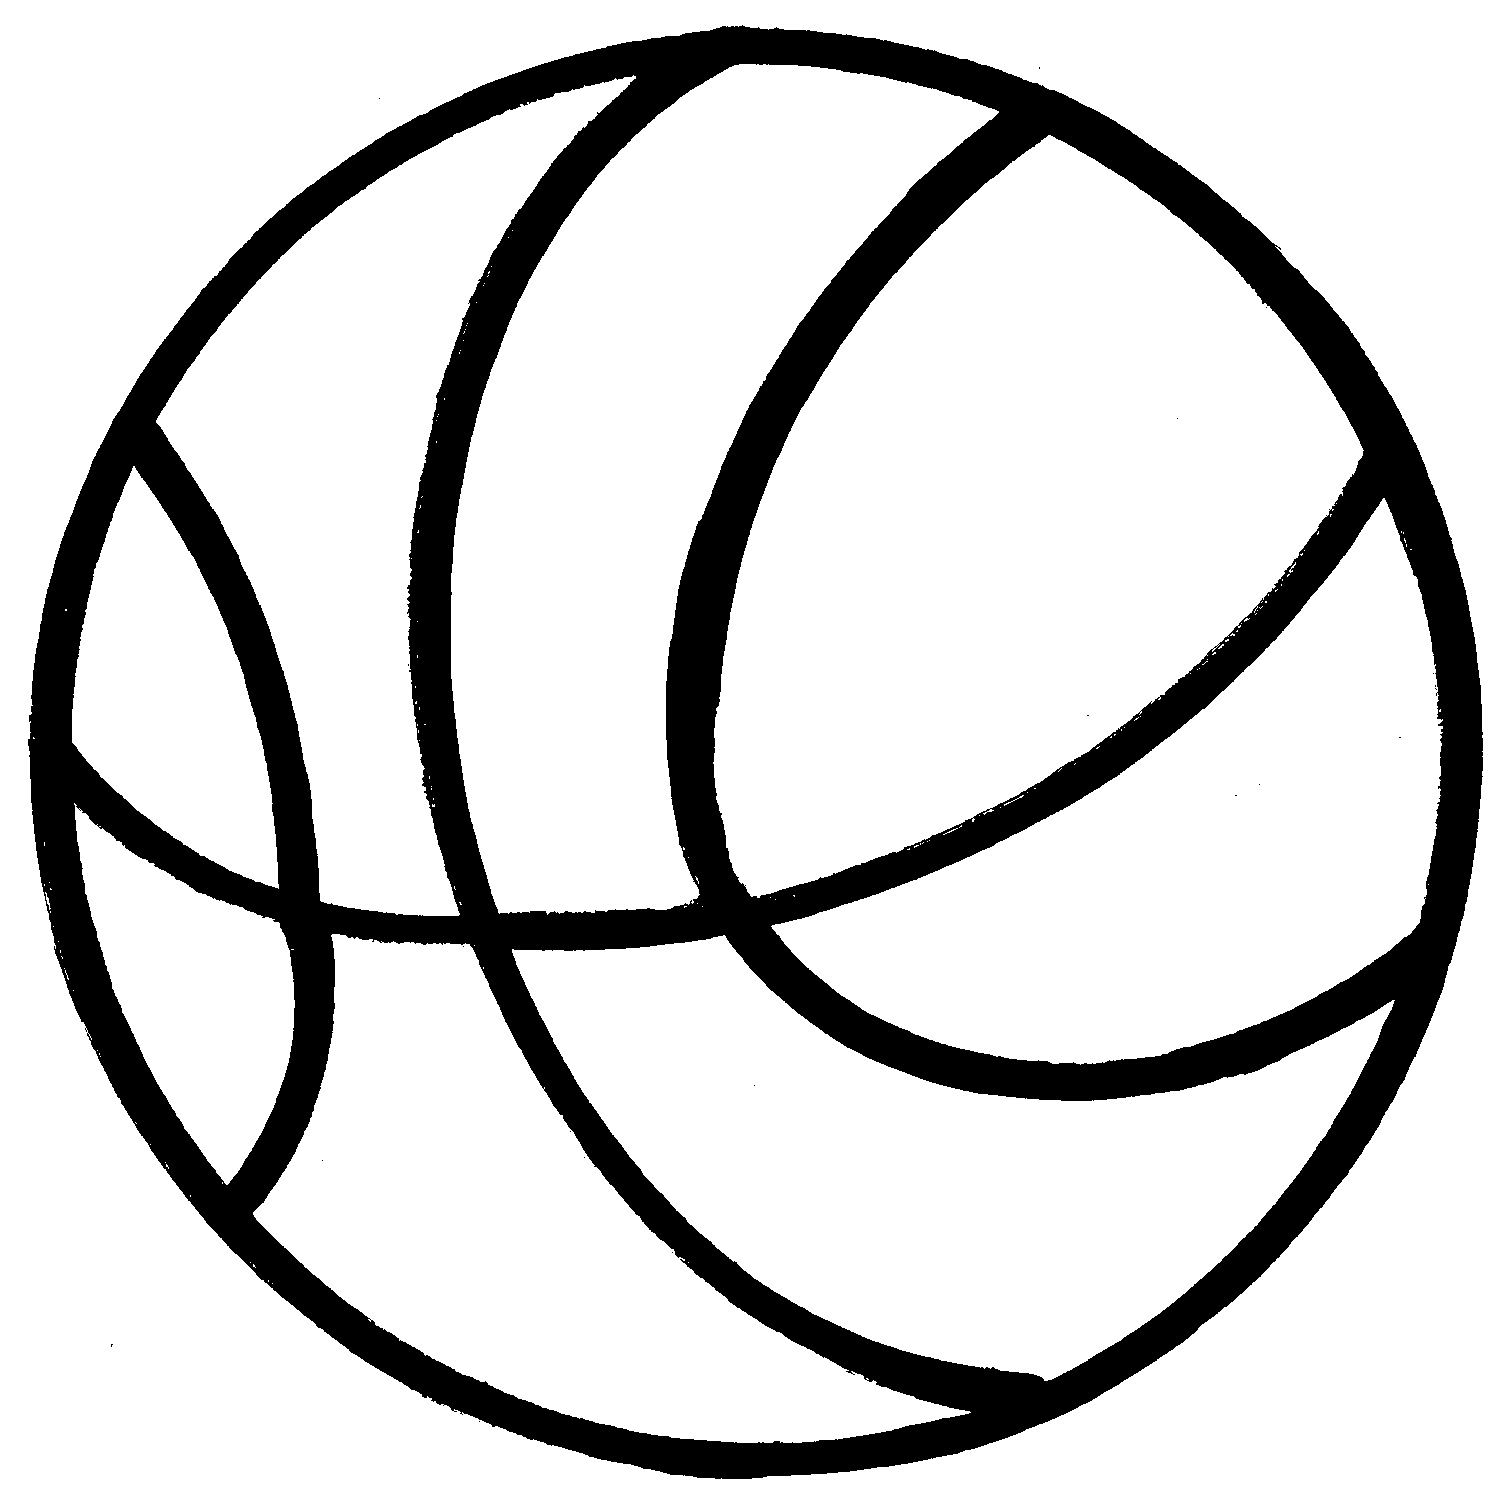 Free basketball download clip. Ball clipart black and white